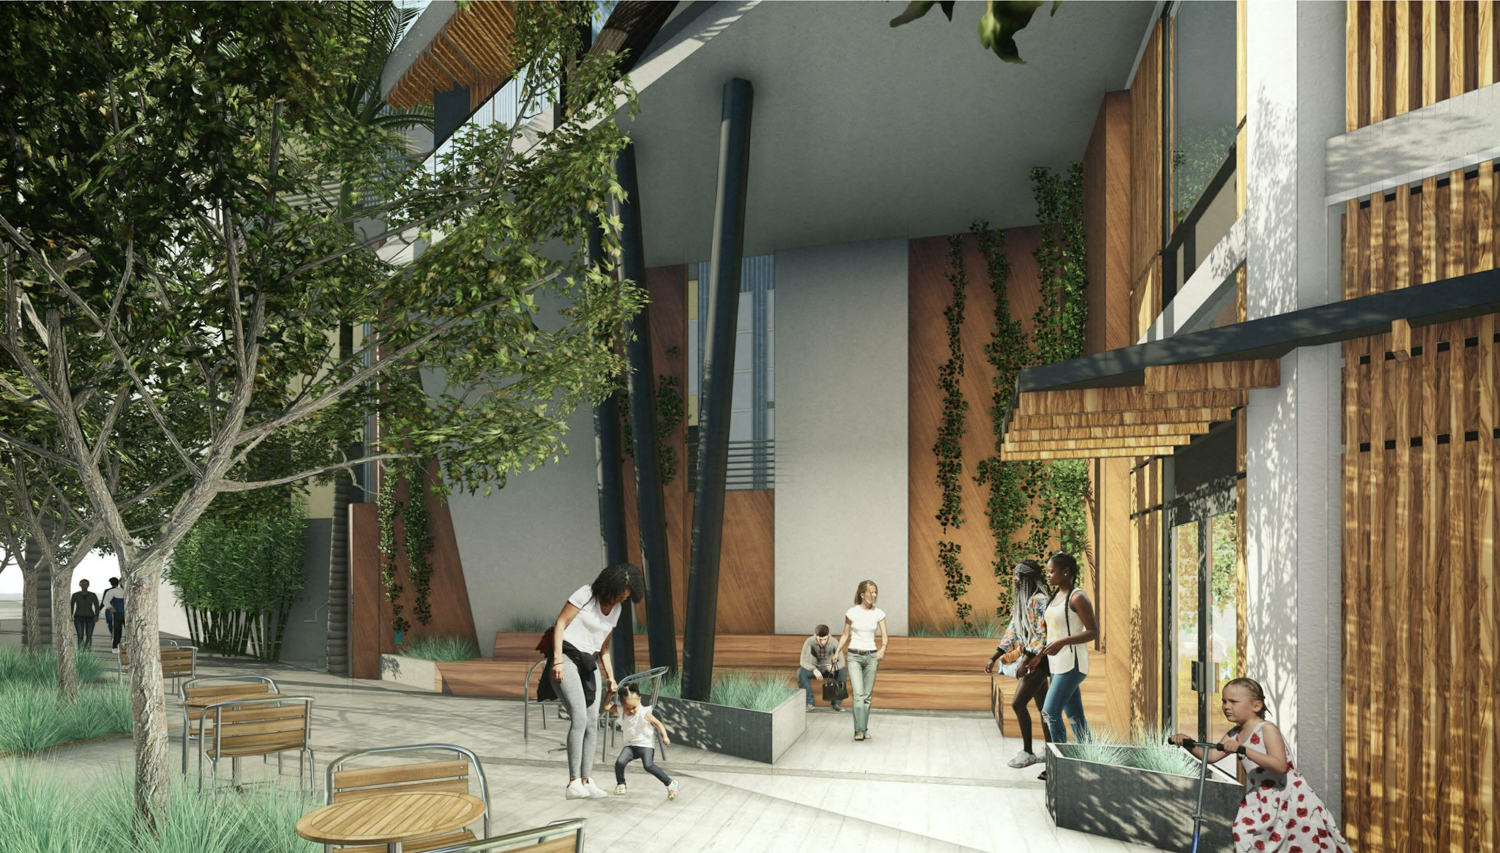 300 De Haro Street covered seating nook, rendering by BAR Architects